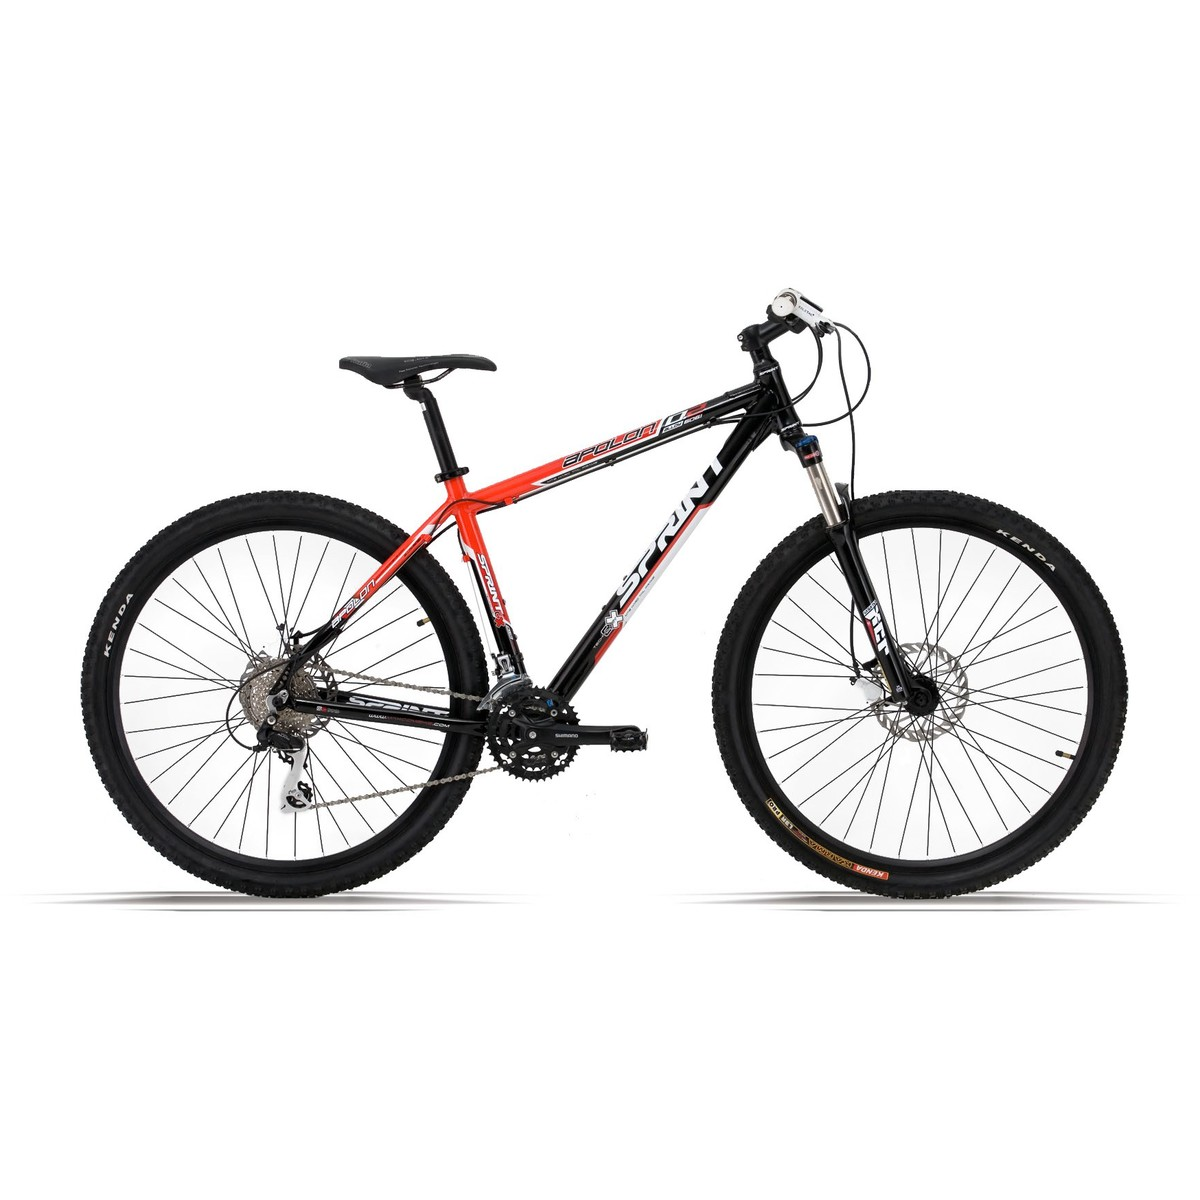 bicicleta-sprint-apolon-elite-5275